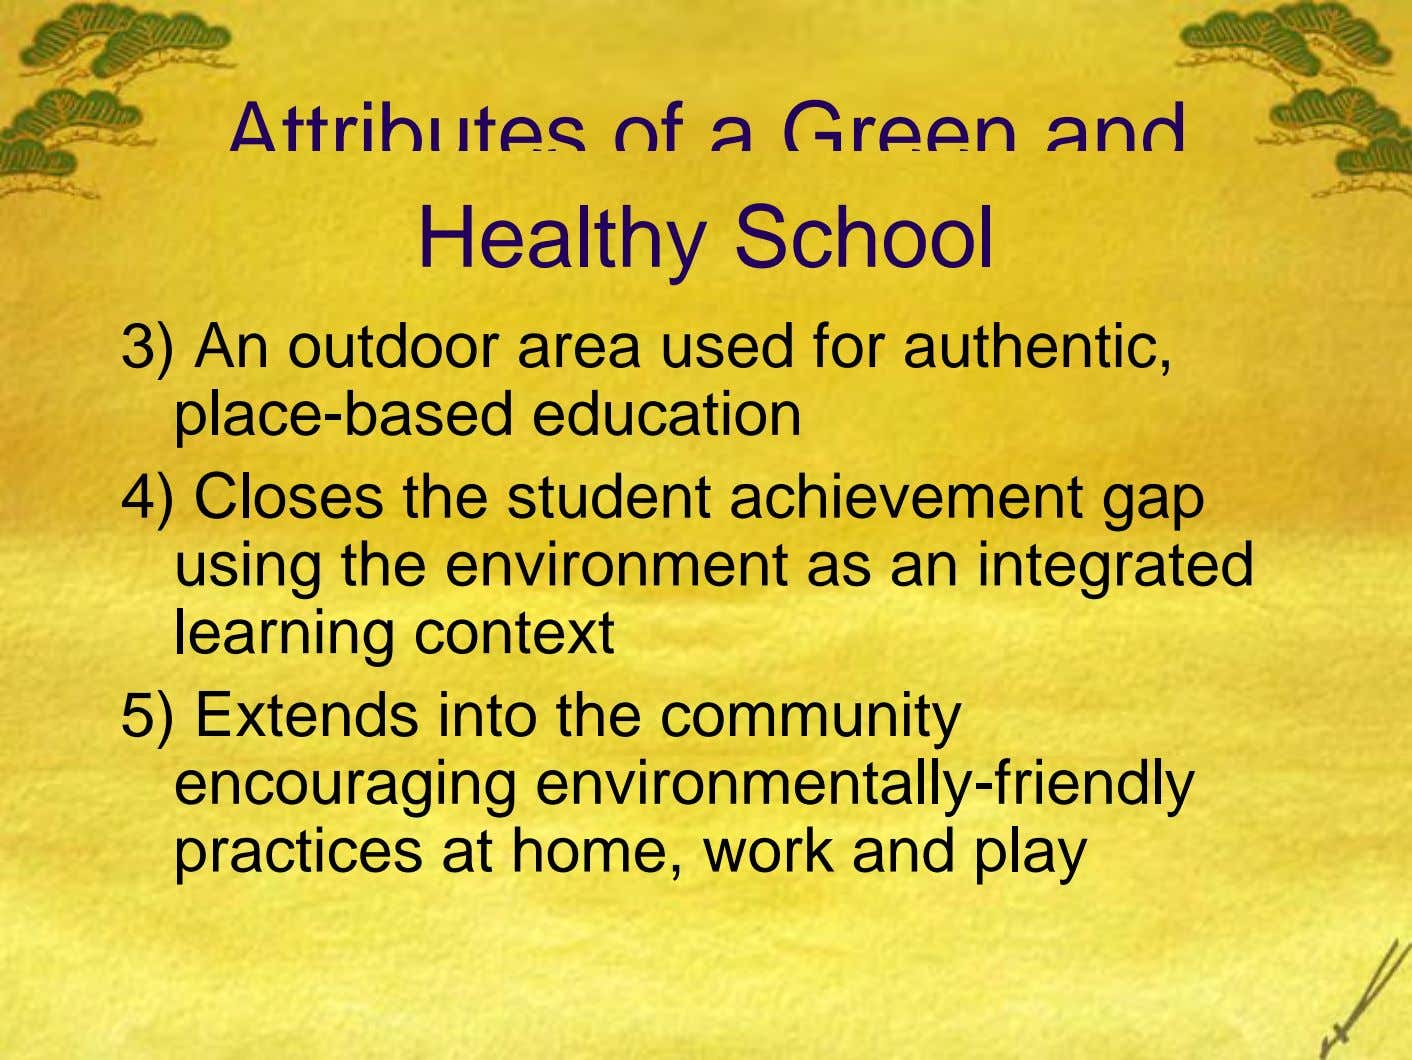 Attributes of a Green and Healthy School 3) An outdoor area used for authentic, place-based education